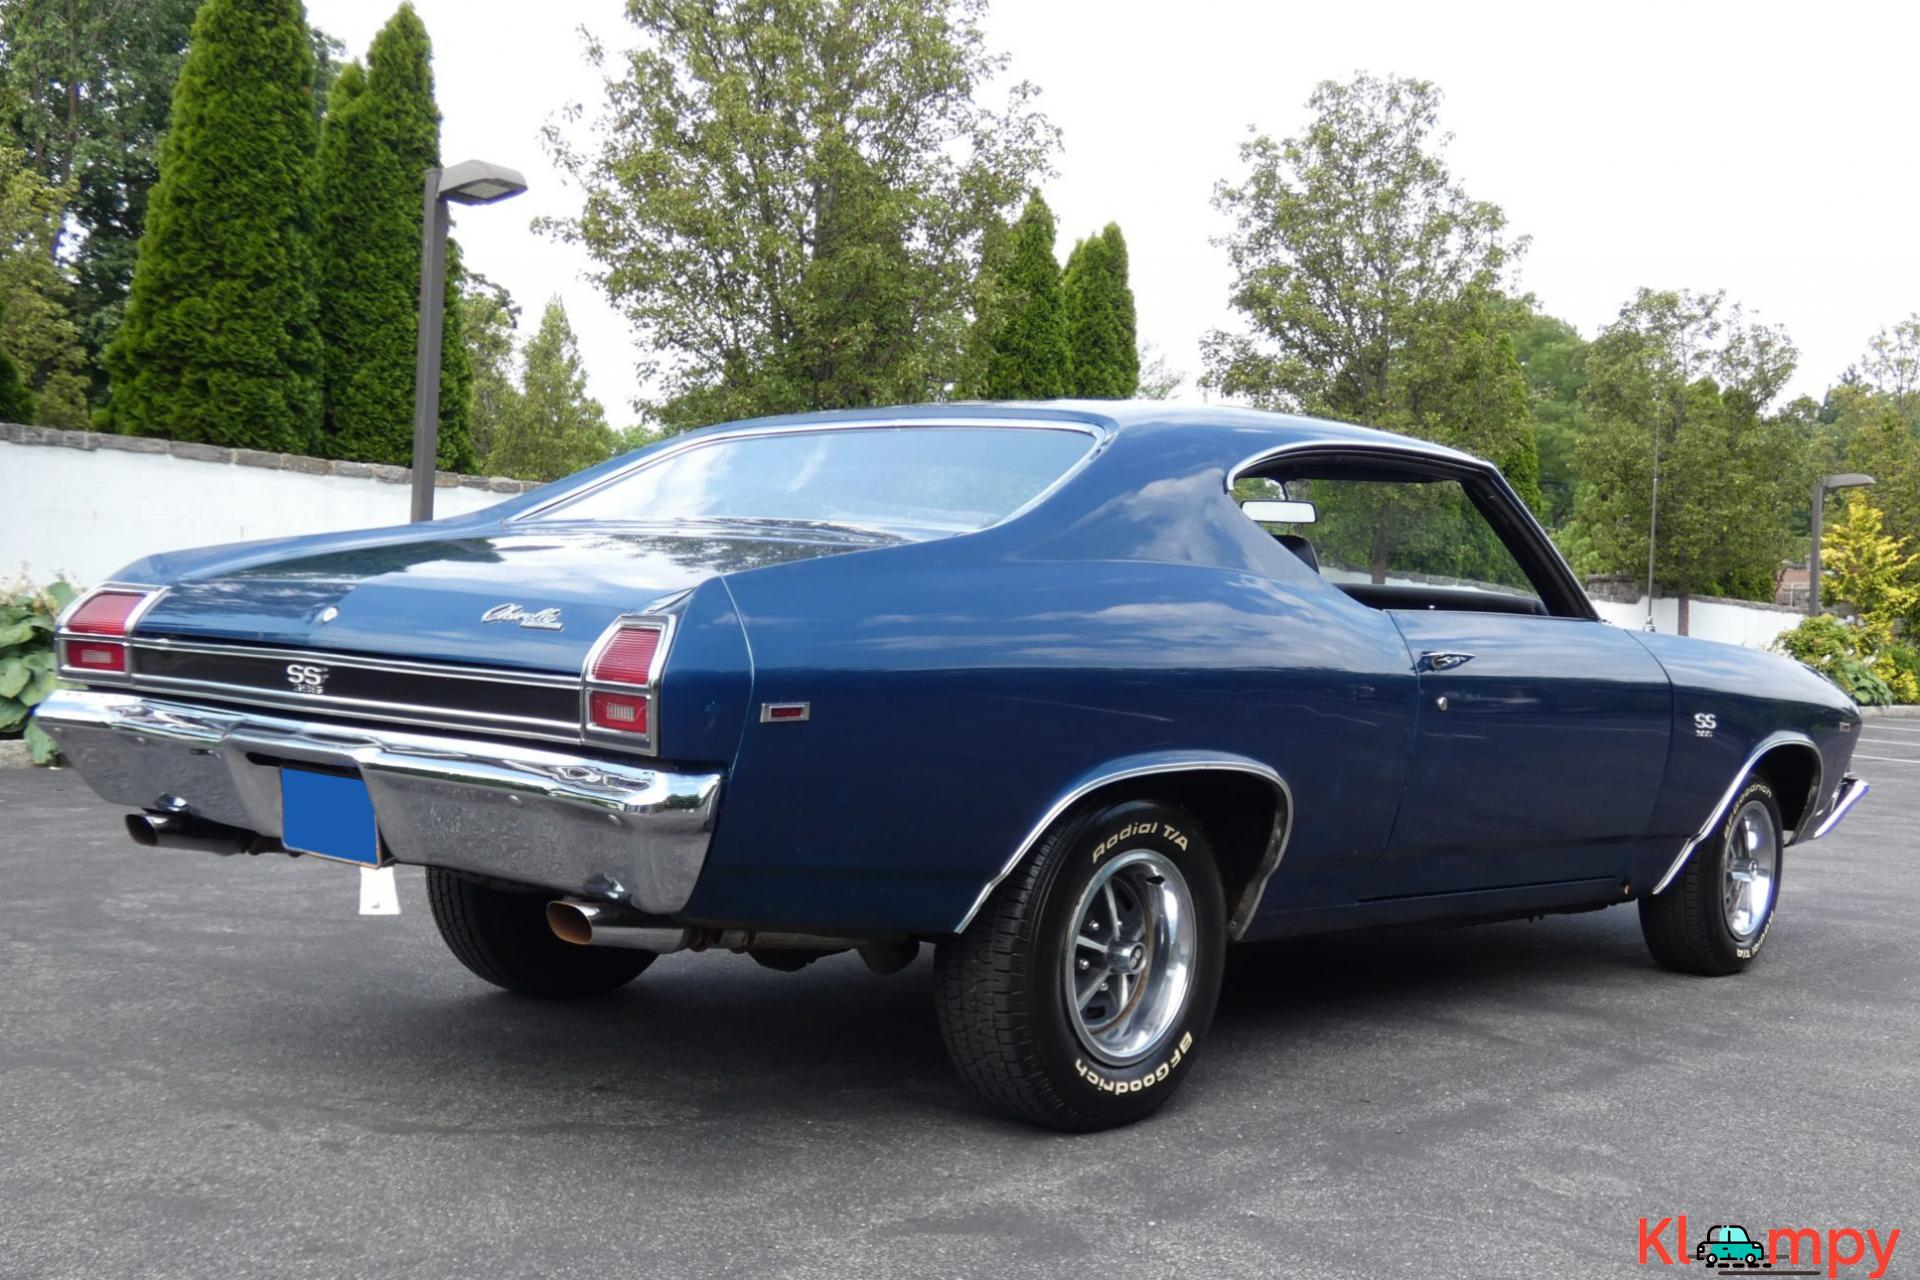 1969 Chevrolet Chevelle SS 396 Sport Coupe - 5/27